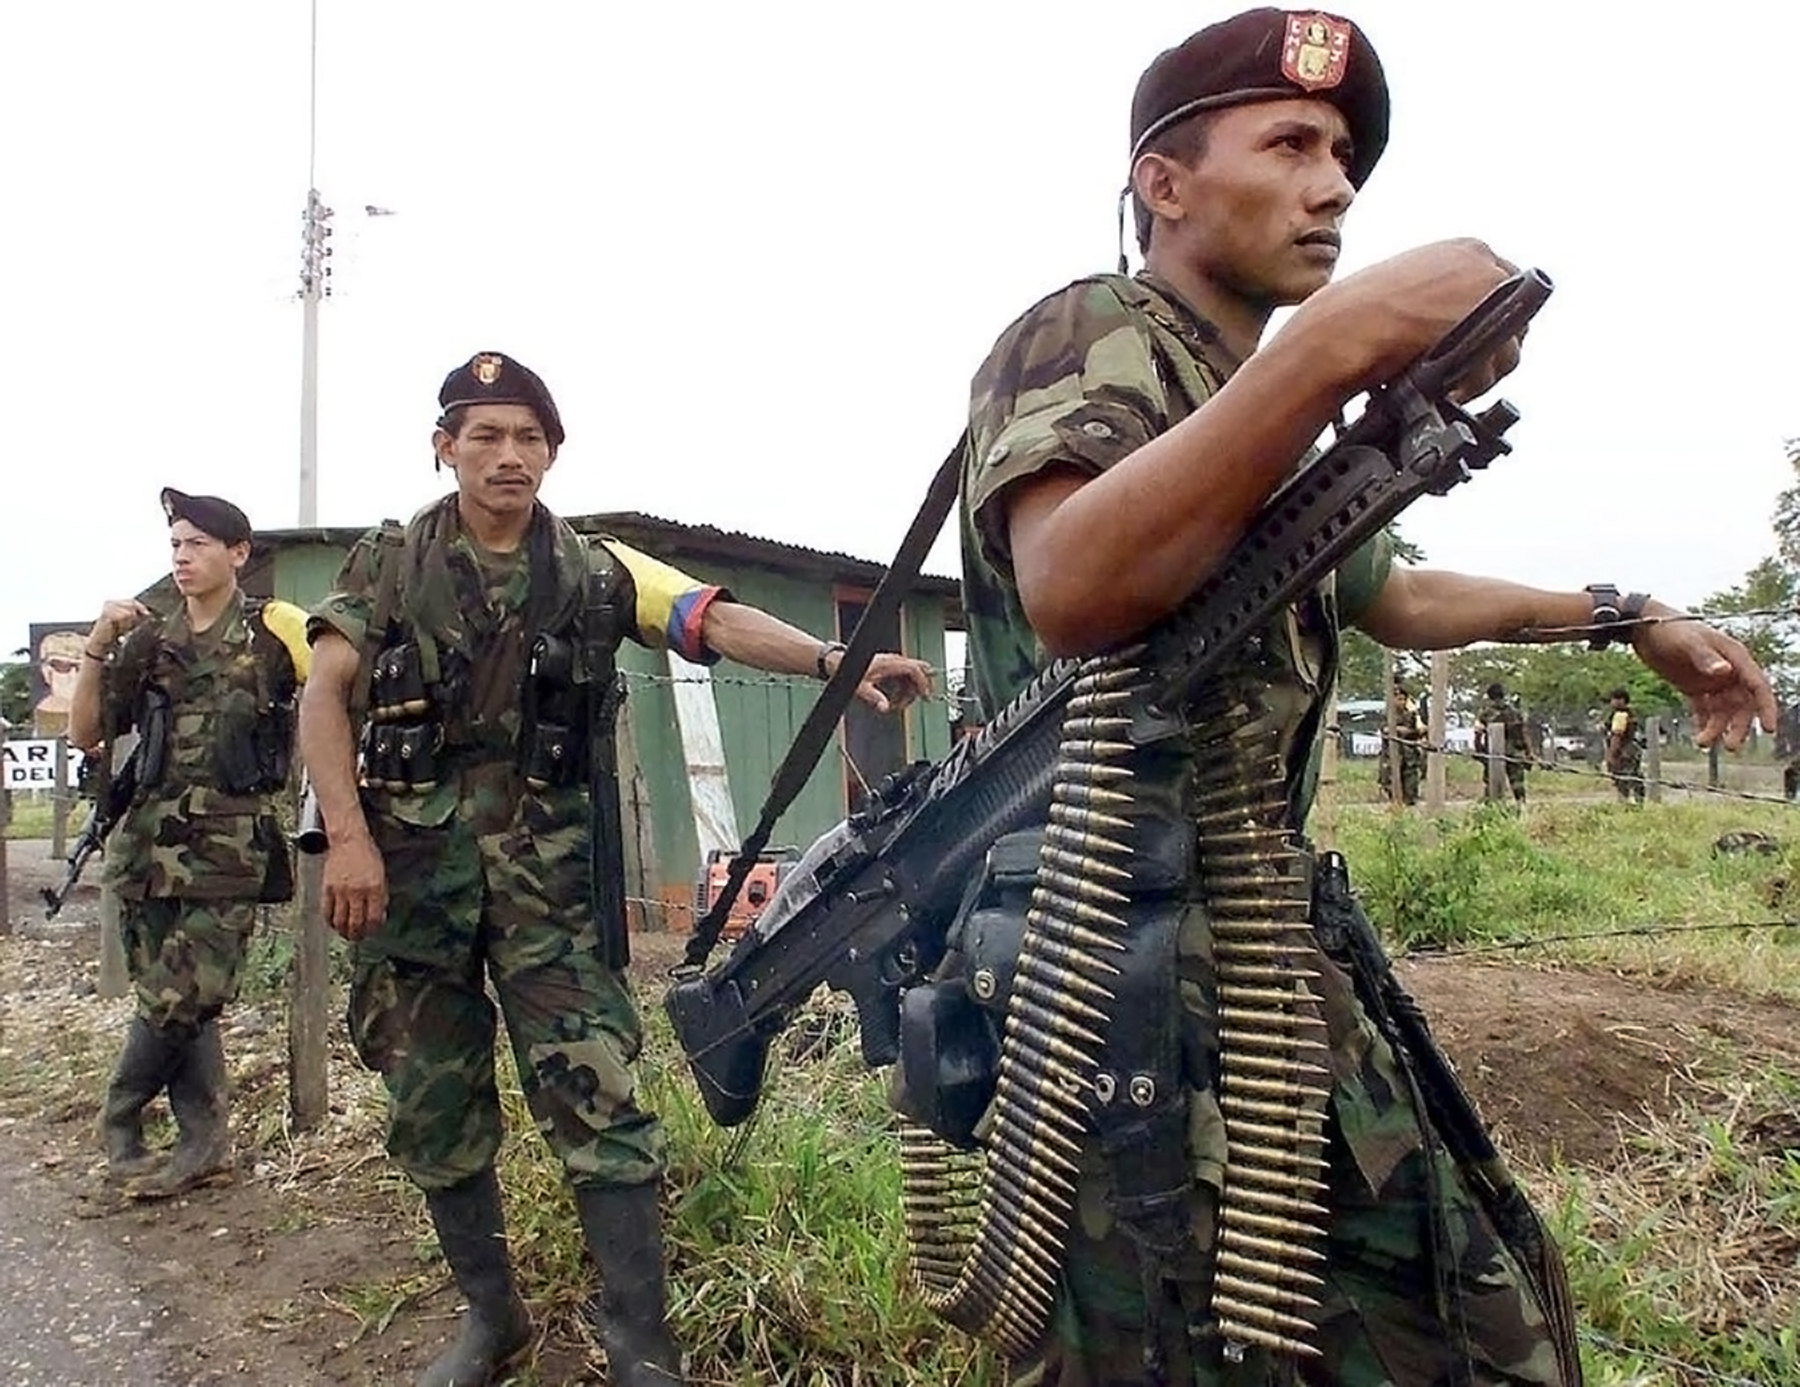 FARC guerrillas stand guard during talks between the rebel chief and the Colombian president in 2001. Photograph by LUIS ACOSTA / AFP via Getty Images